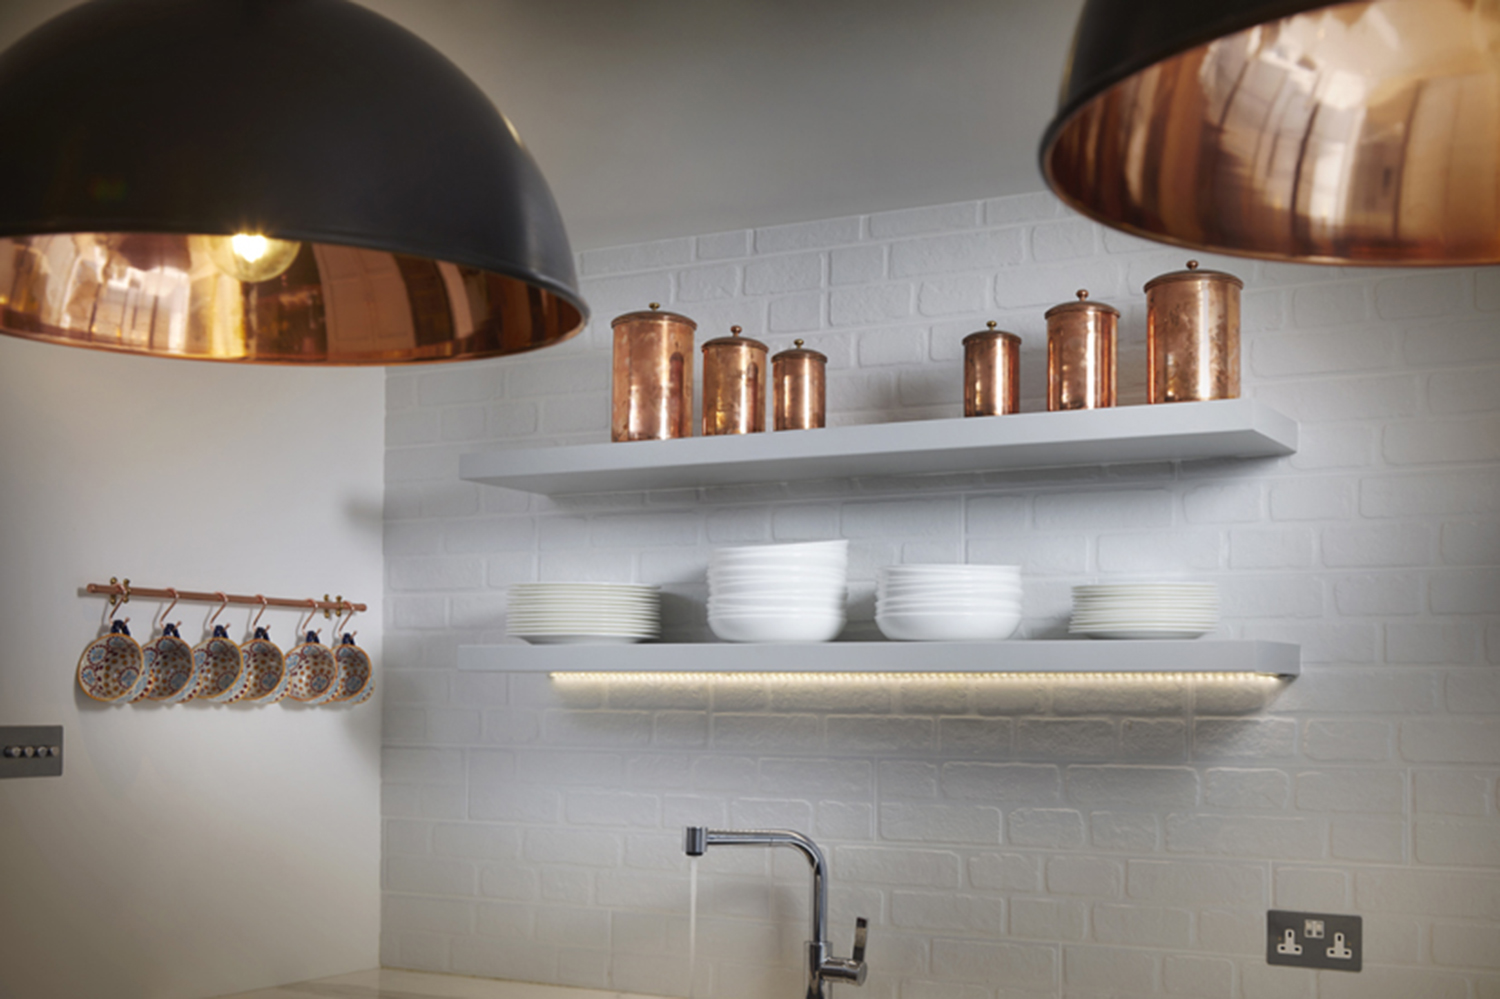 this warm accent shade will add a sophisticated glow to any kitchen.